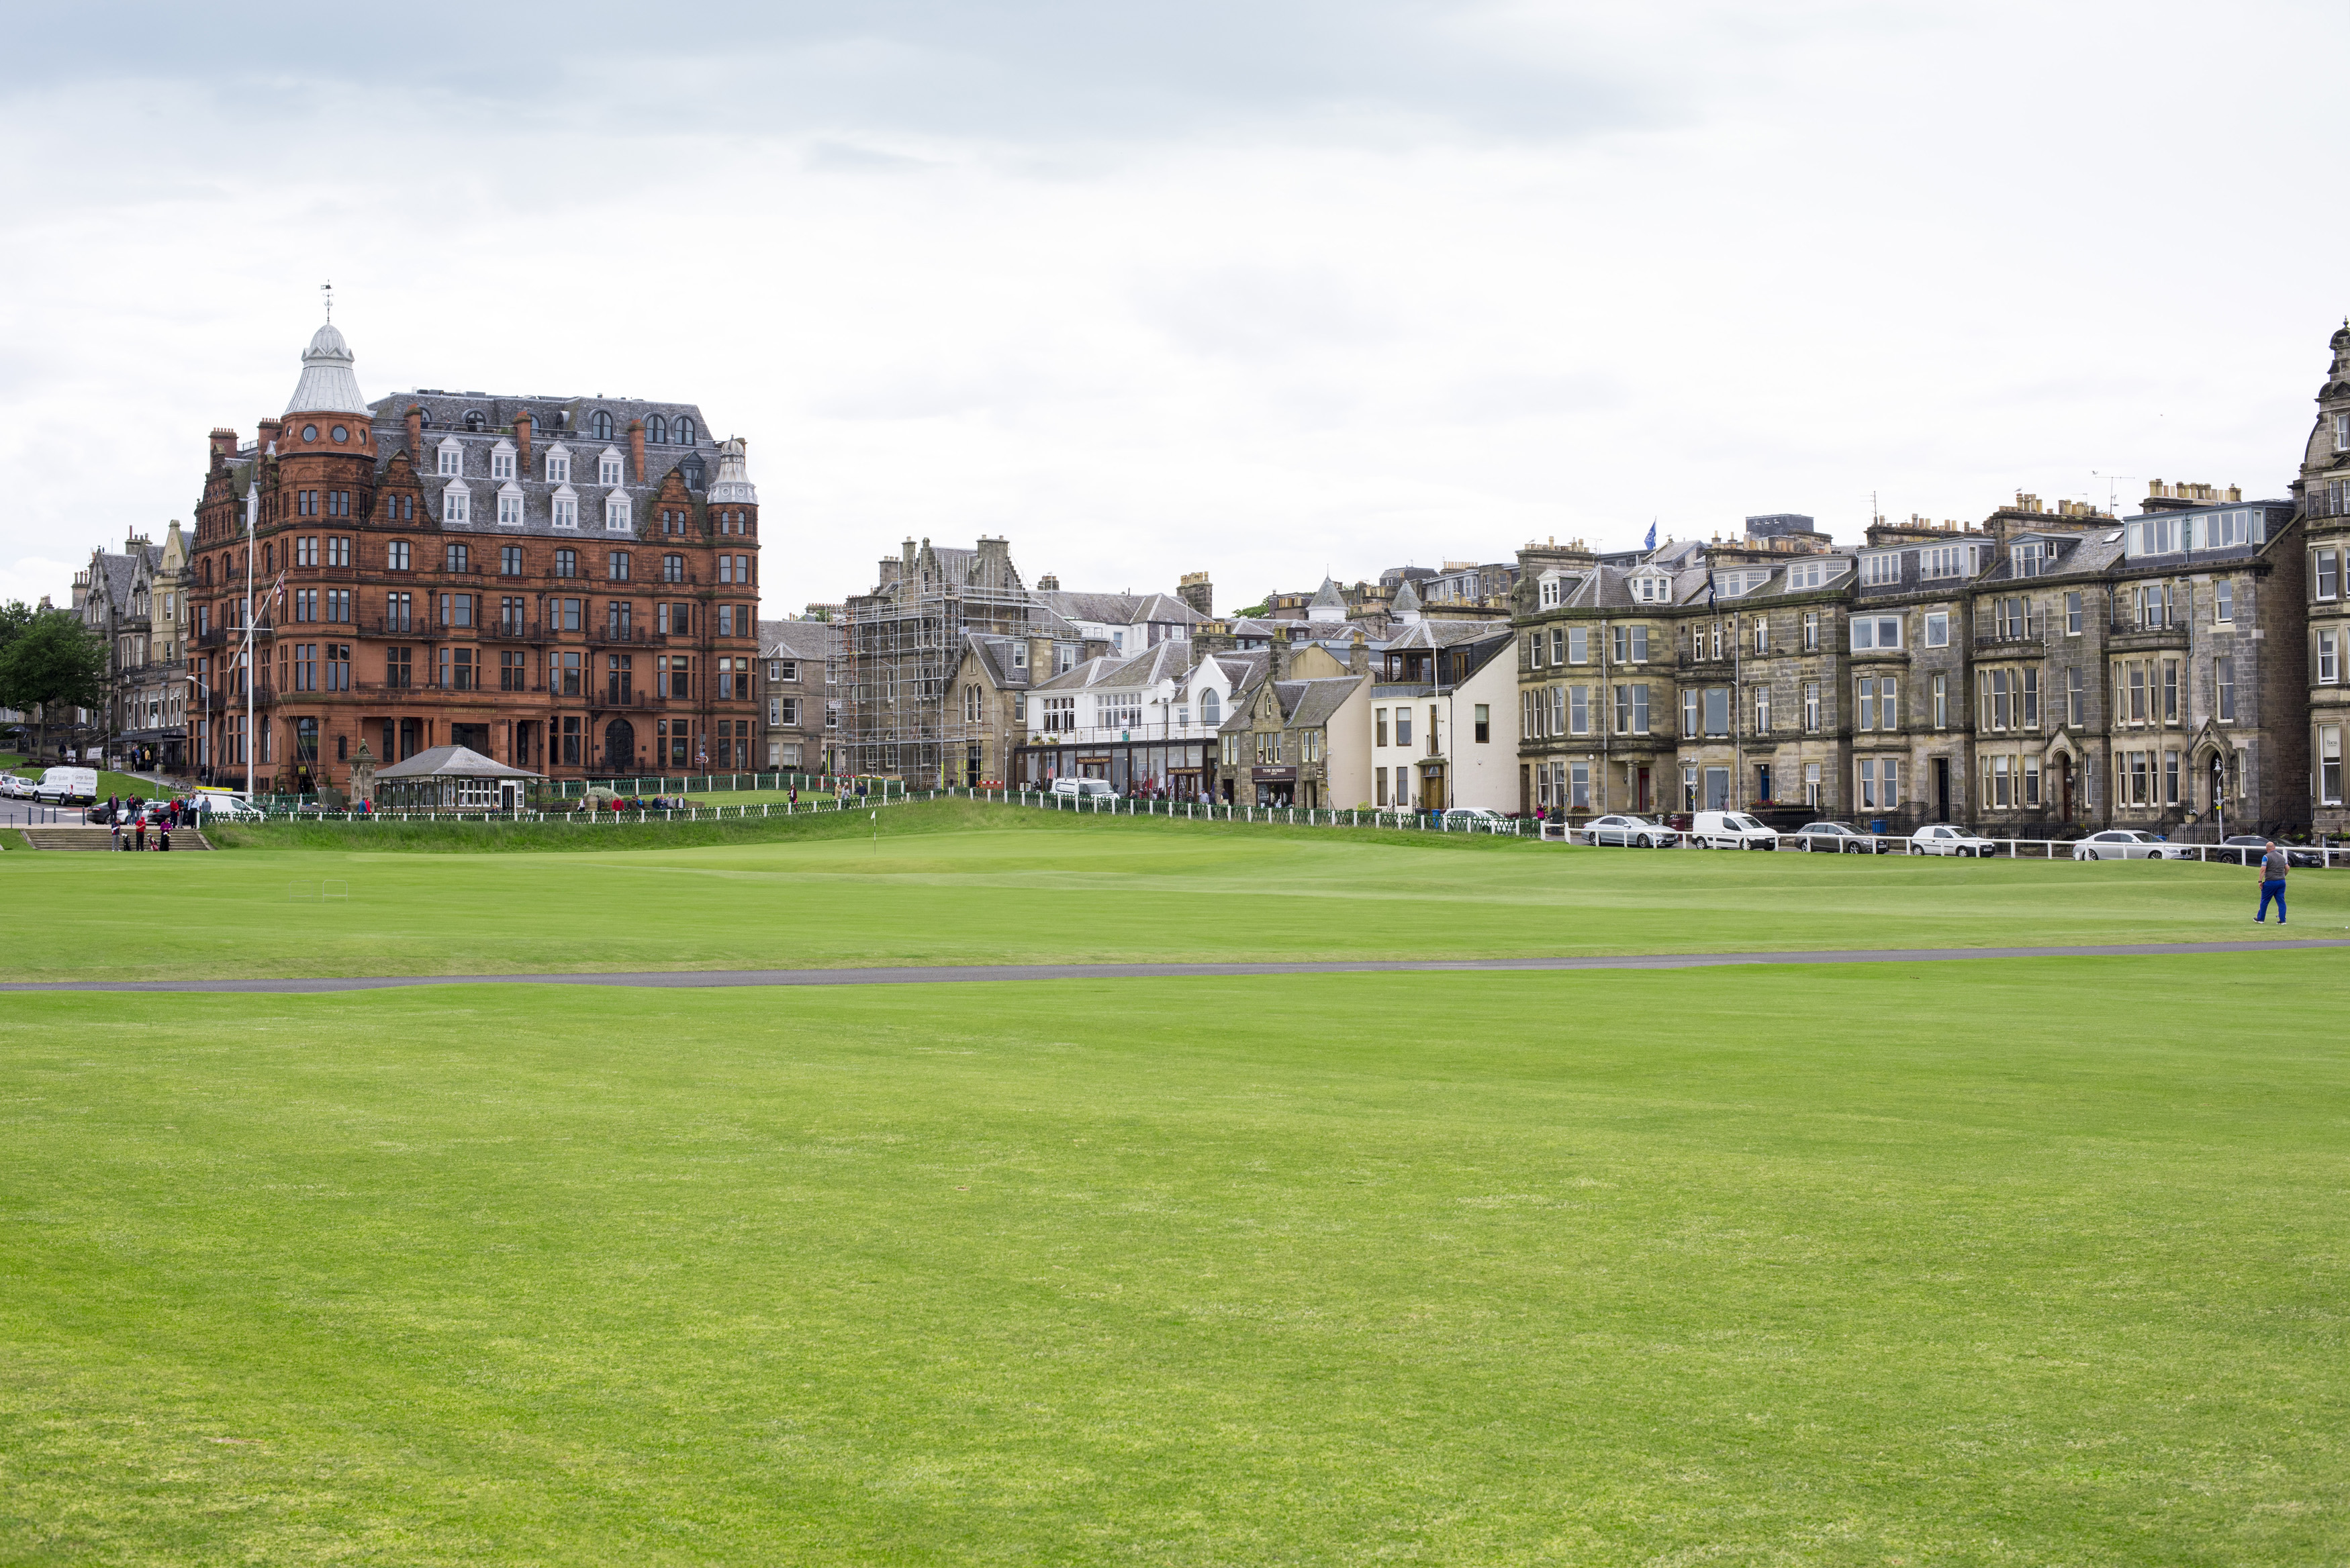 View across the golf course of St Andrews, Scotland with its historic architecture and rows of town houses in a travel and sport concept